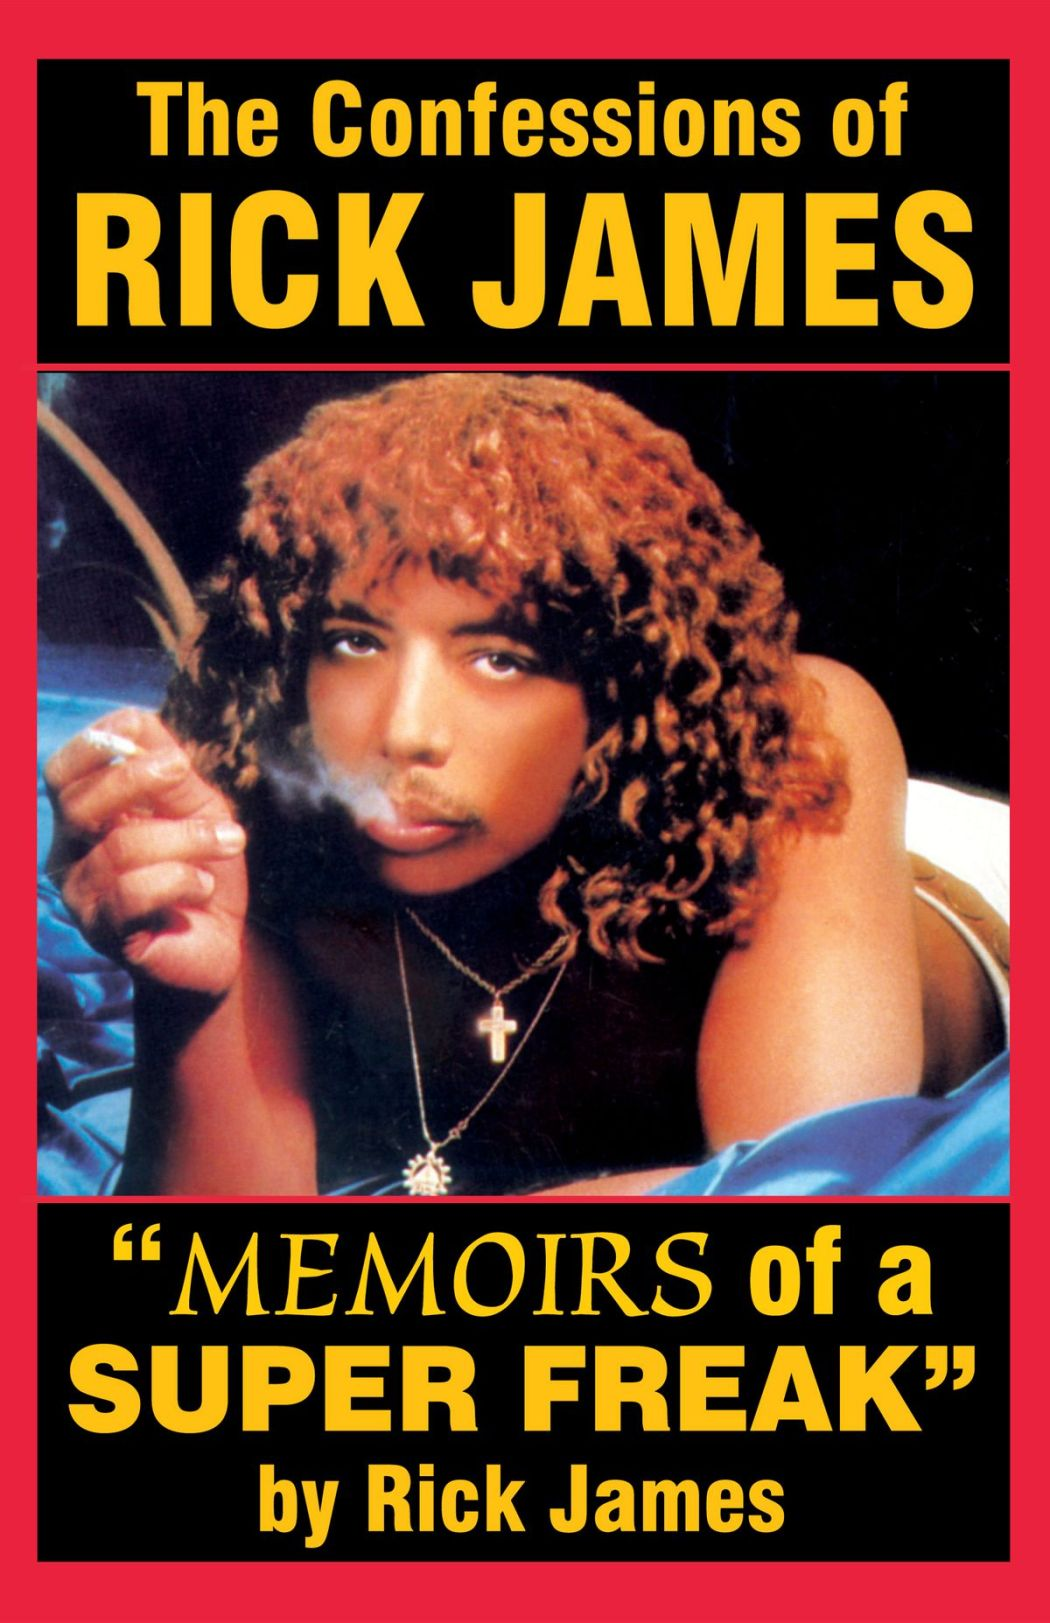 rick-james-memoirs-of-a-super-freak